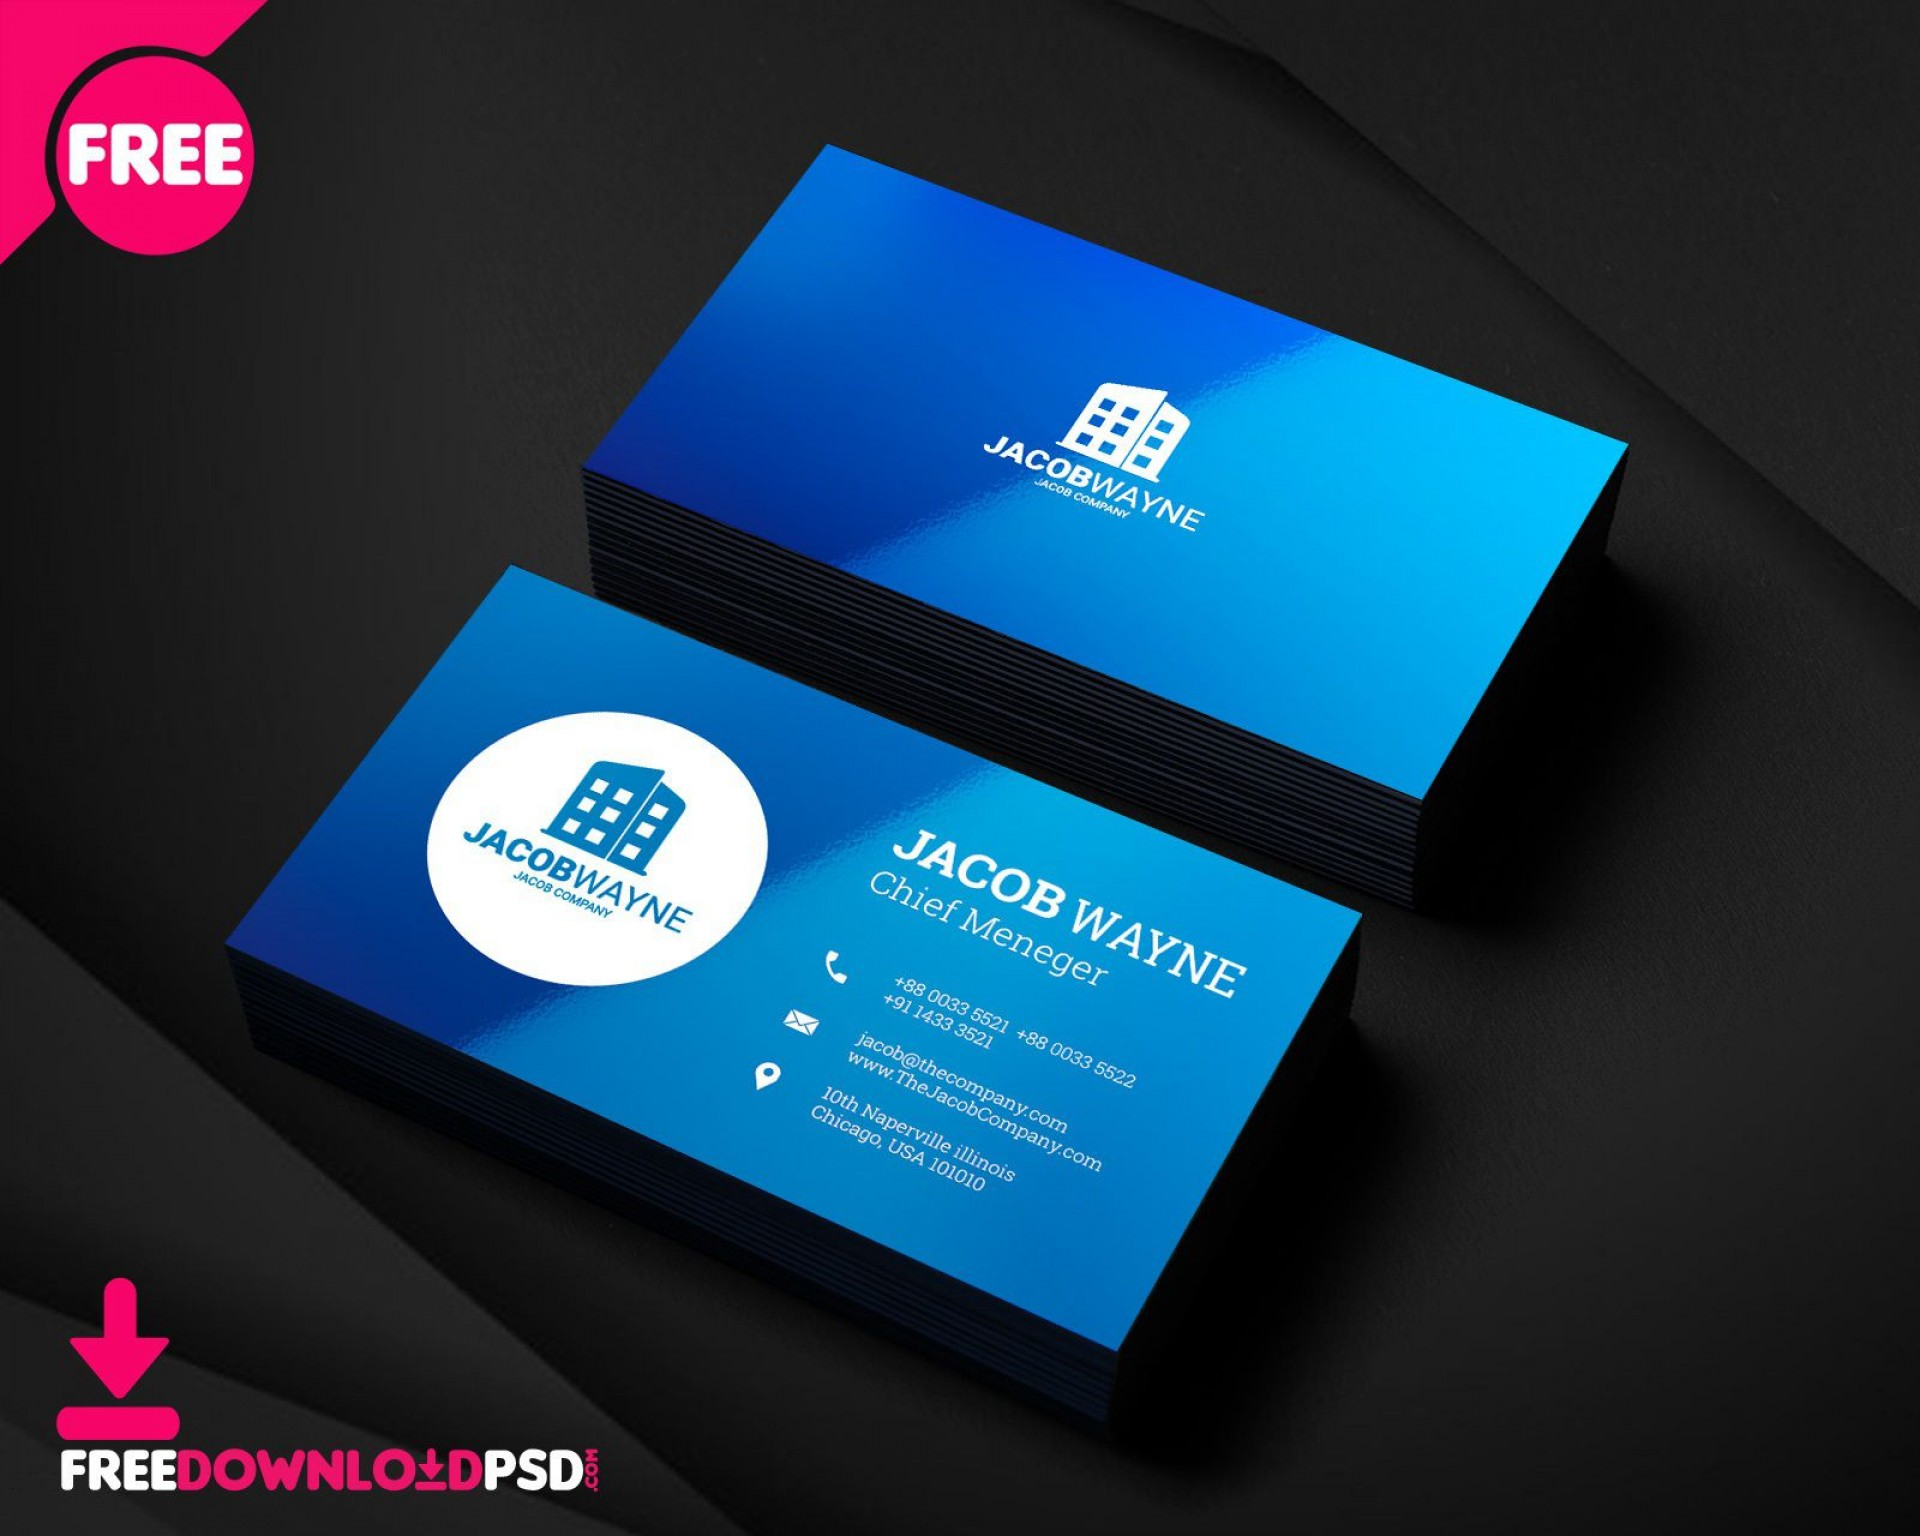 006 Exceptional Free Simple Busines Card Template Word High Definition 1920